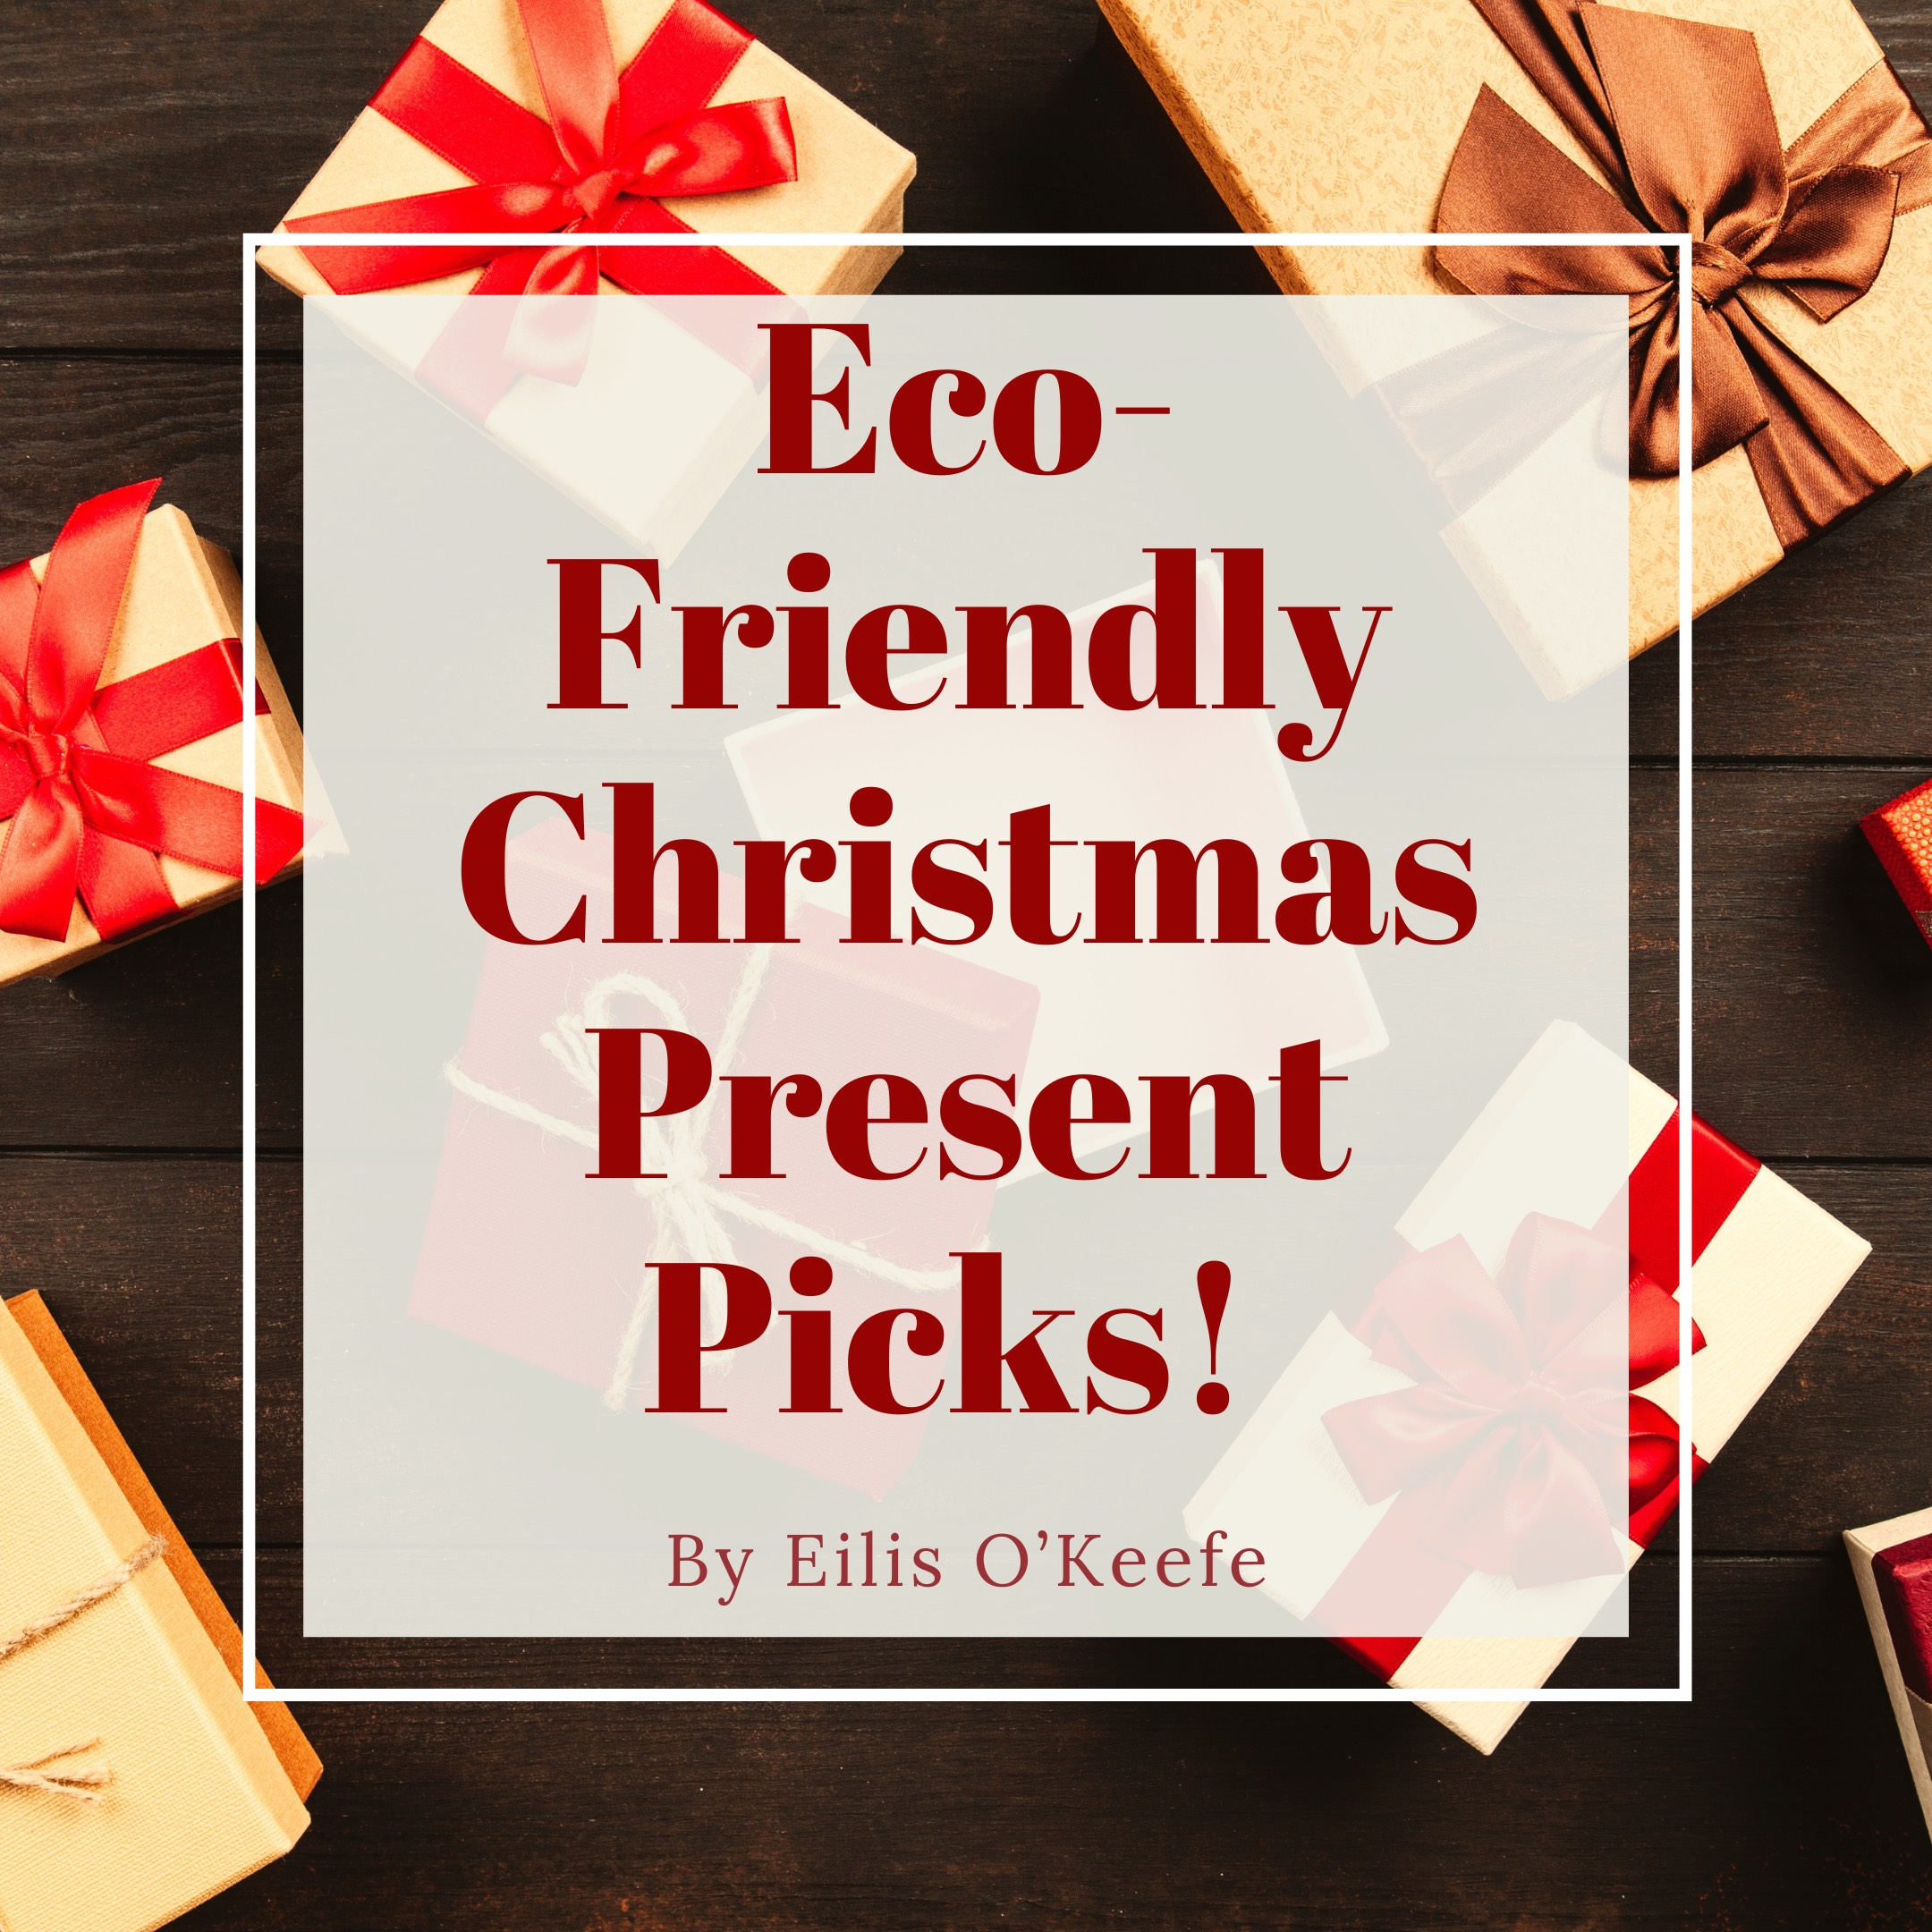 Eco-friendly presents